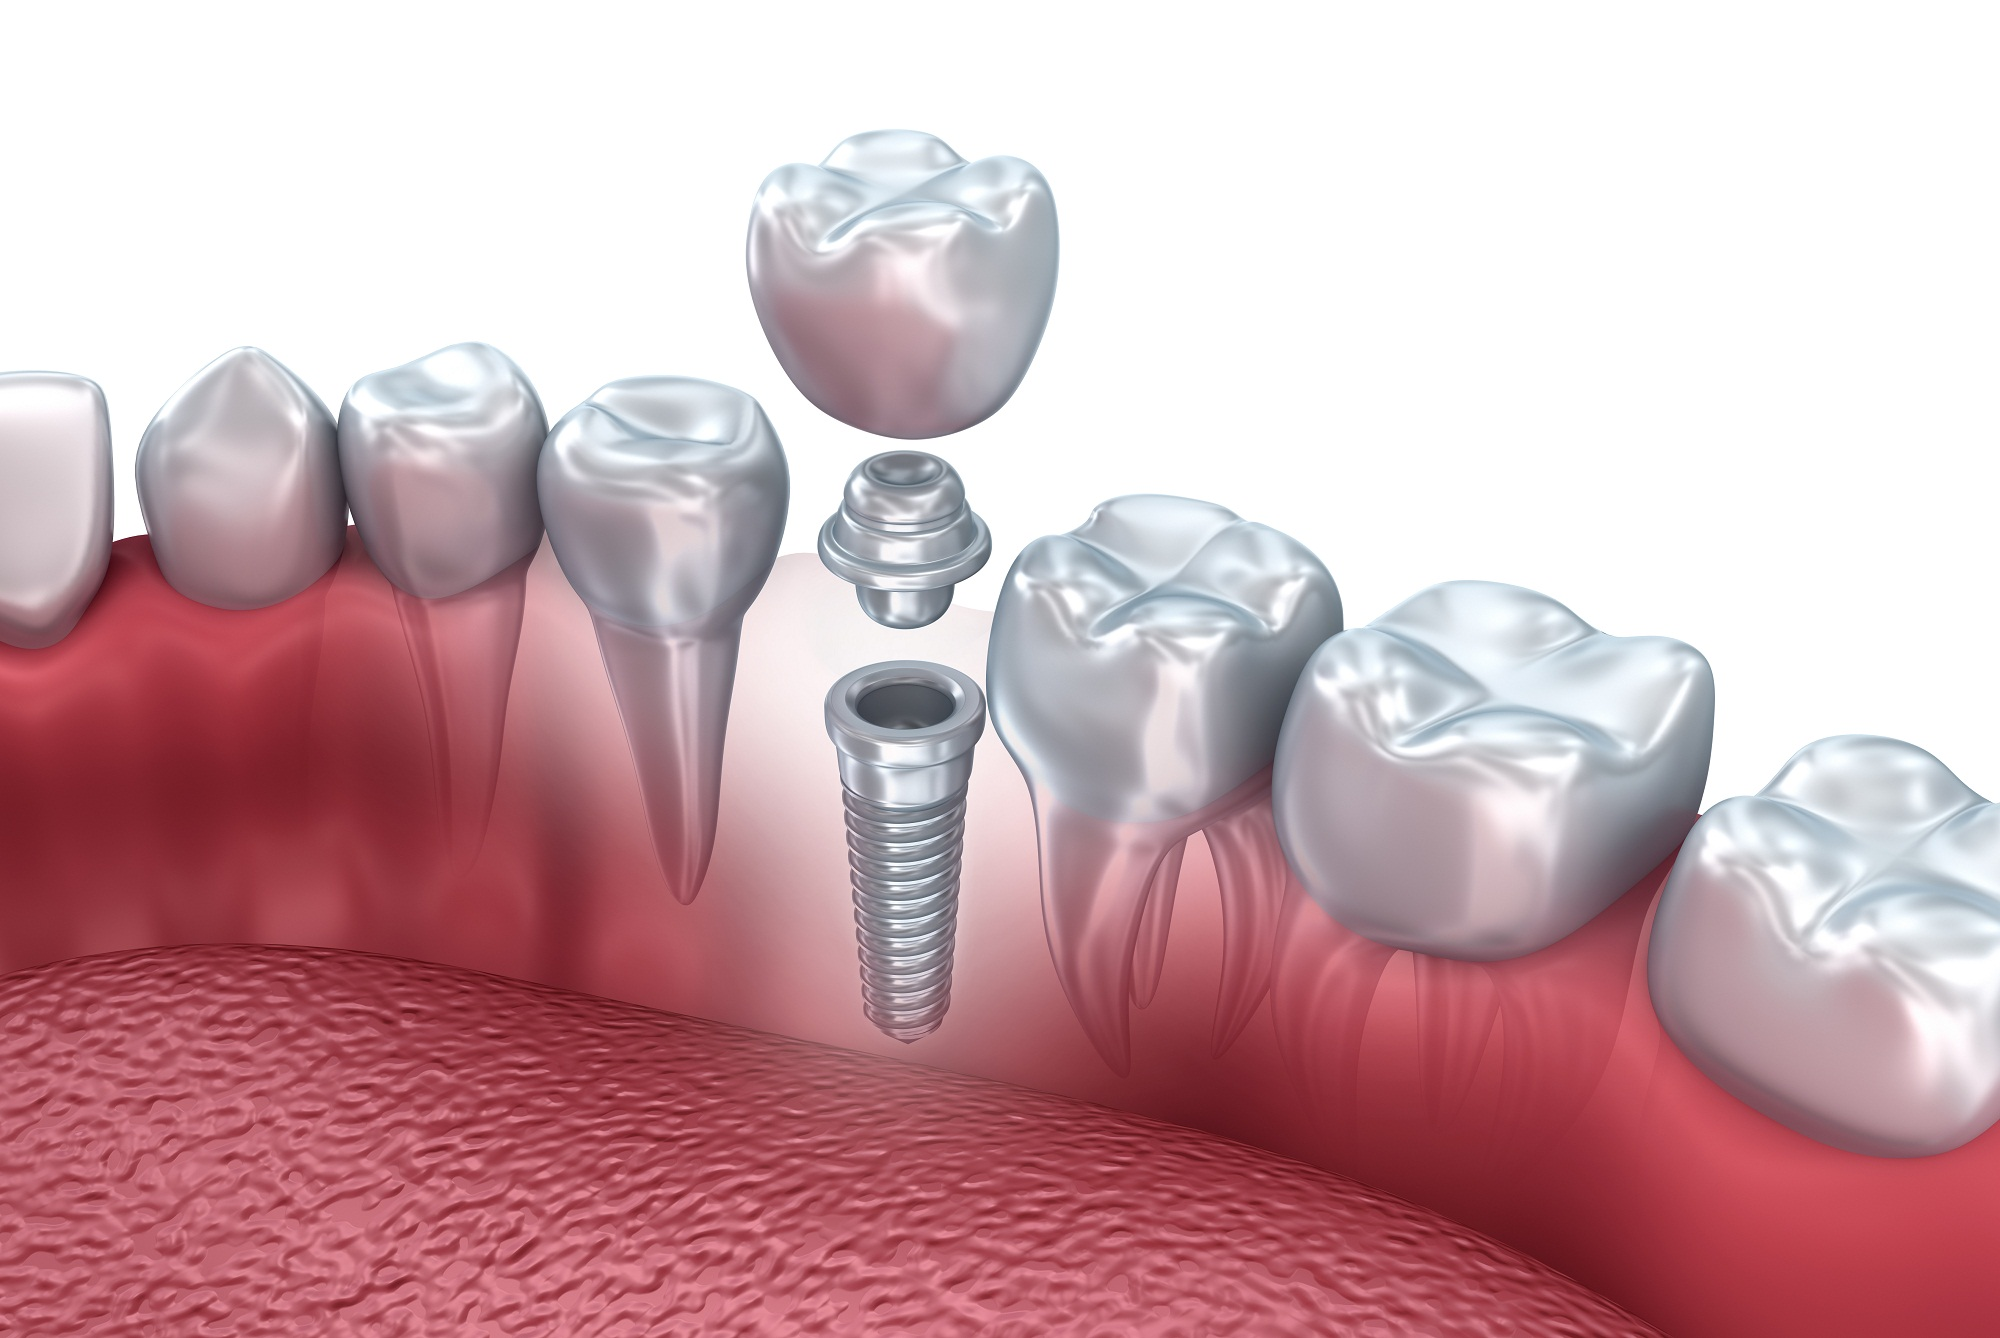 Dental Implants Stockport – Why Are They So Expensive?